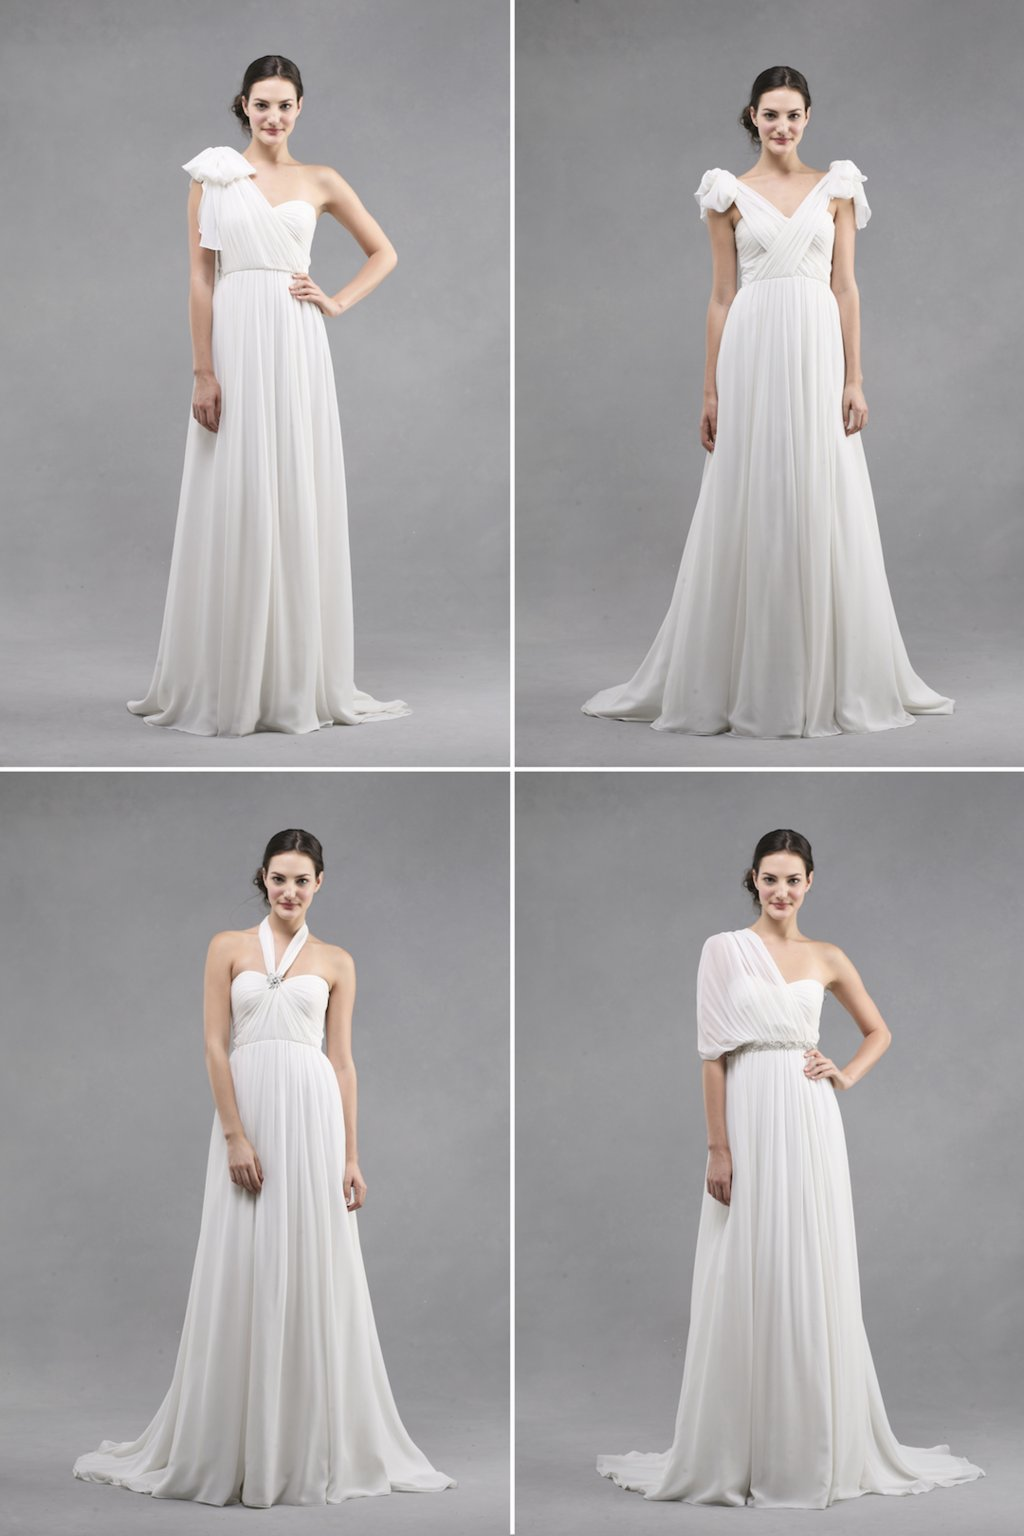 Convertible-wedding-dresses-by-jenny-yoo-2013-bridal.full